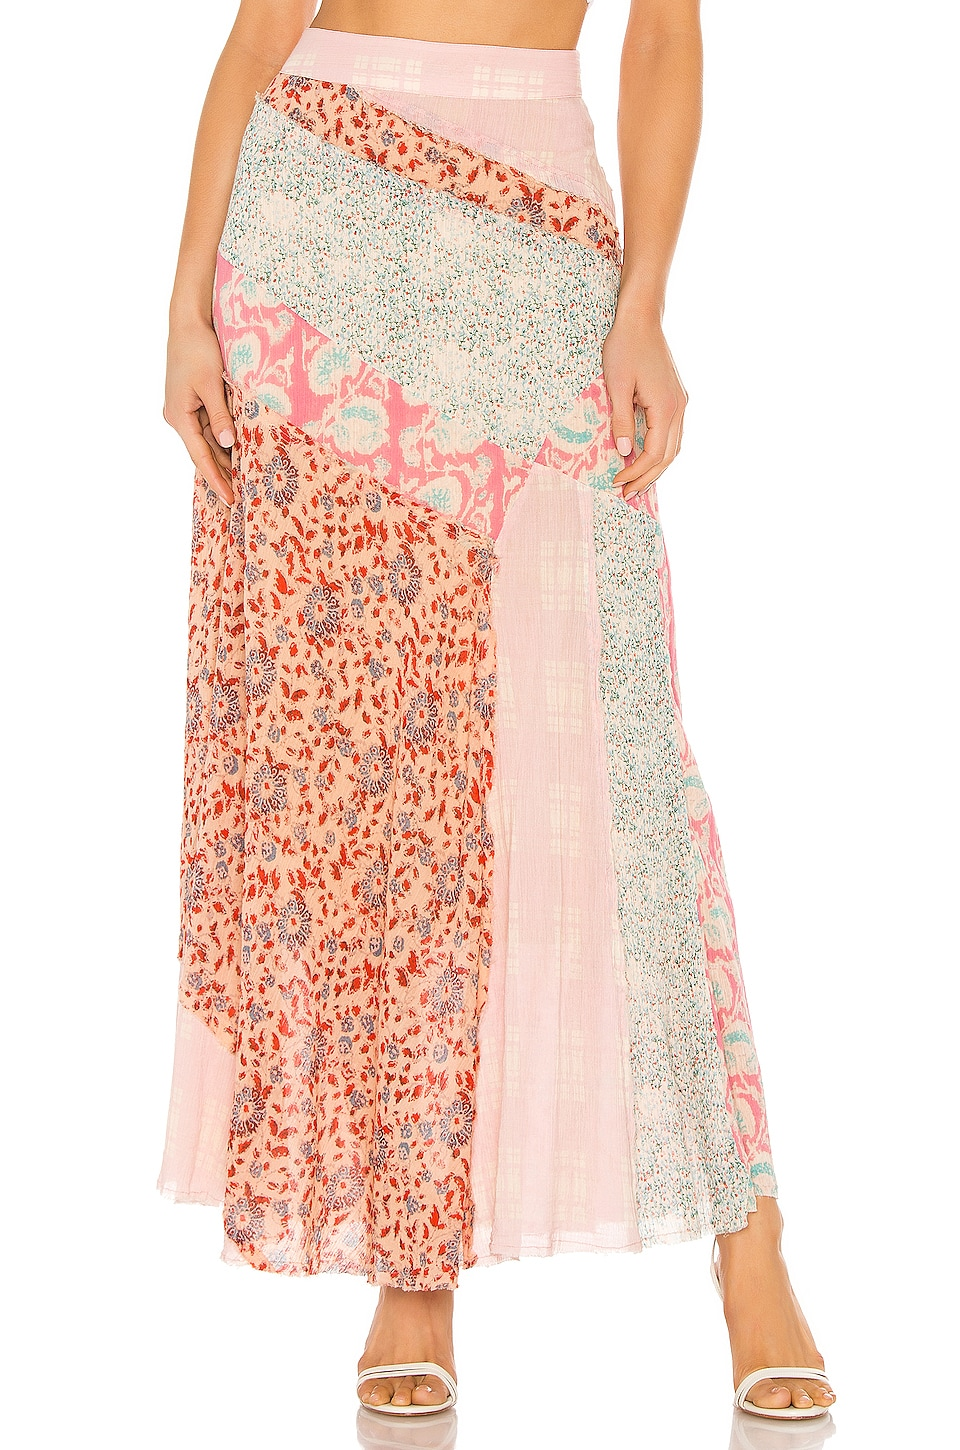 Free People Palma Patchwork Skirt in Peach